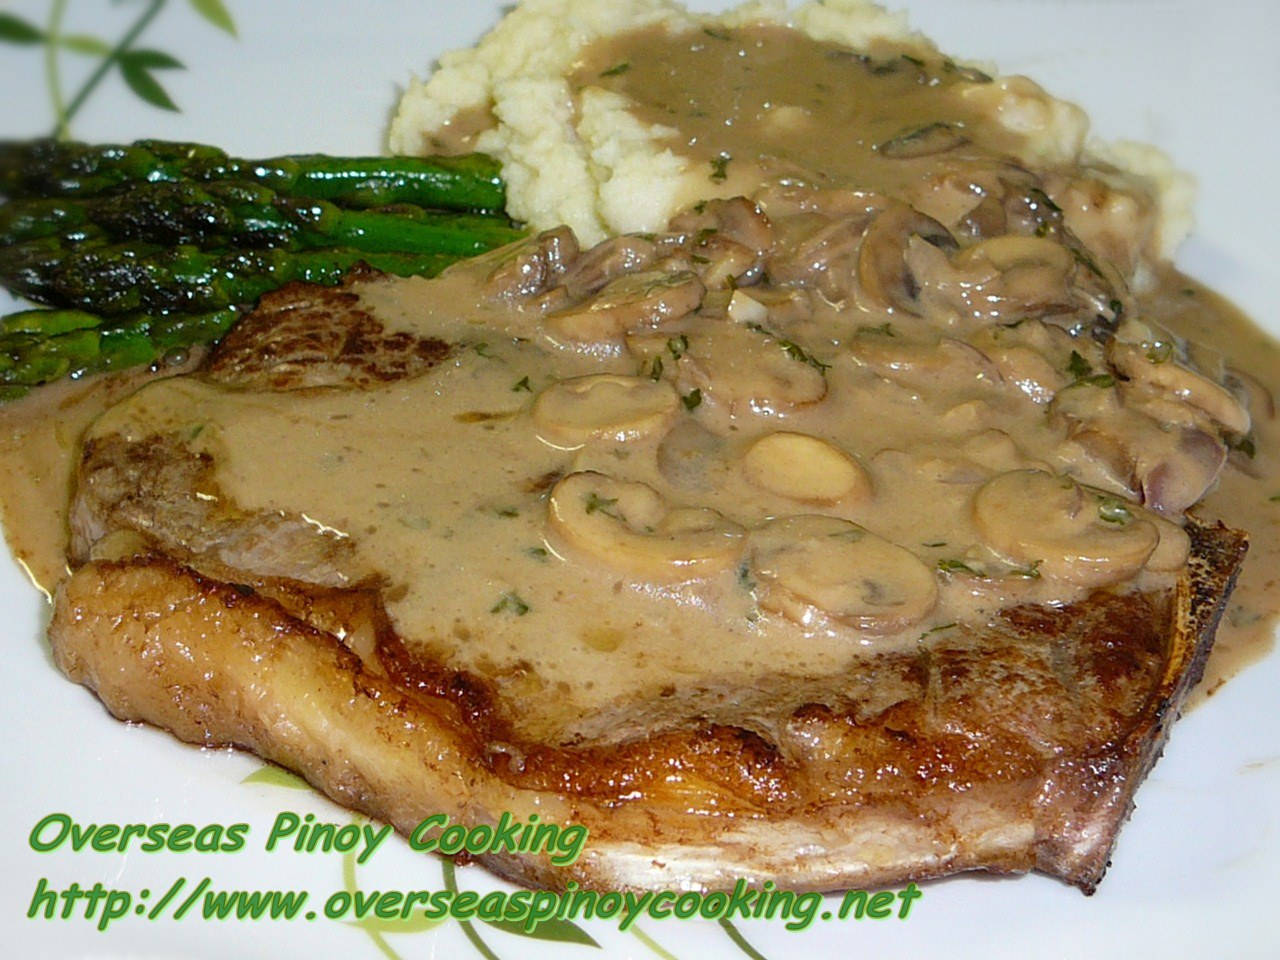 T-Bone Steak with Mushroom Gravy